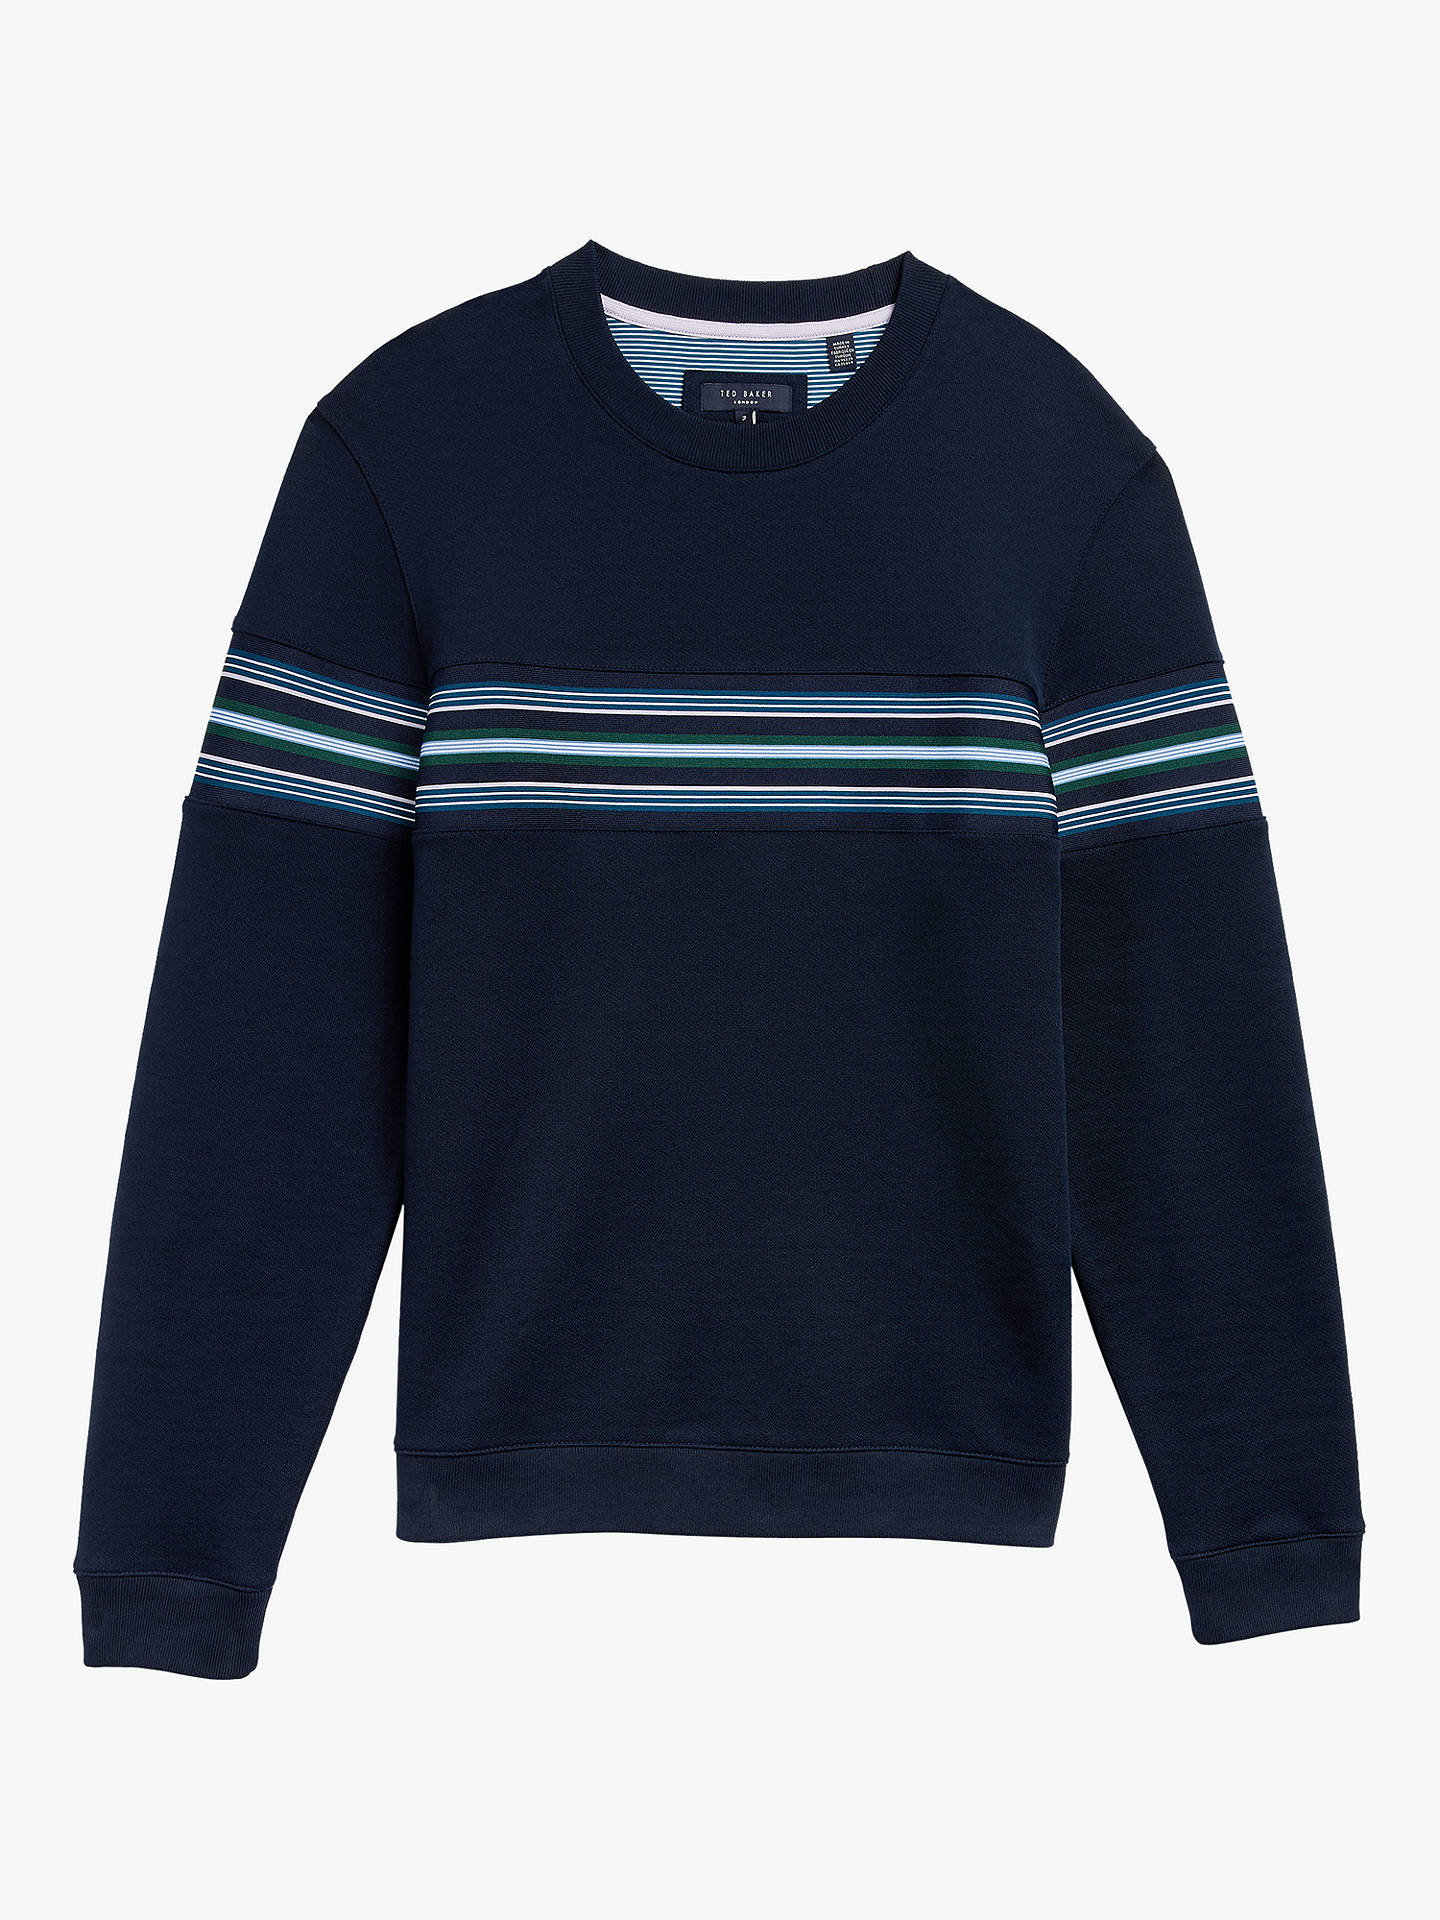 Buy Ted Baker Sumo Cotton Blend Stripe Sweatshirt, Navy, XS Online at johnlewis.com